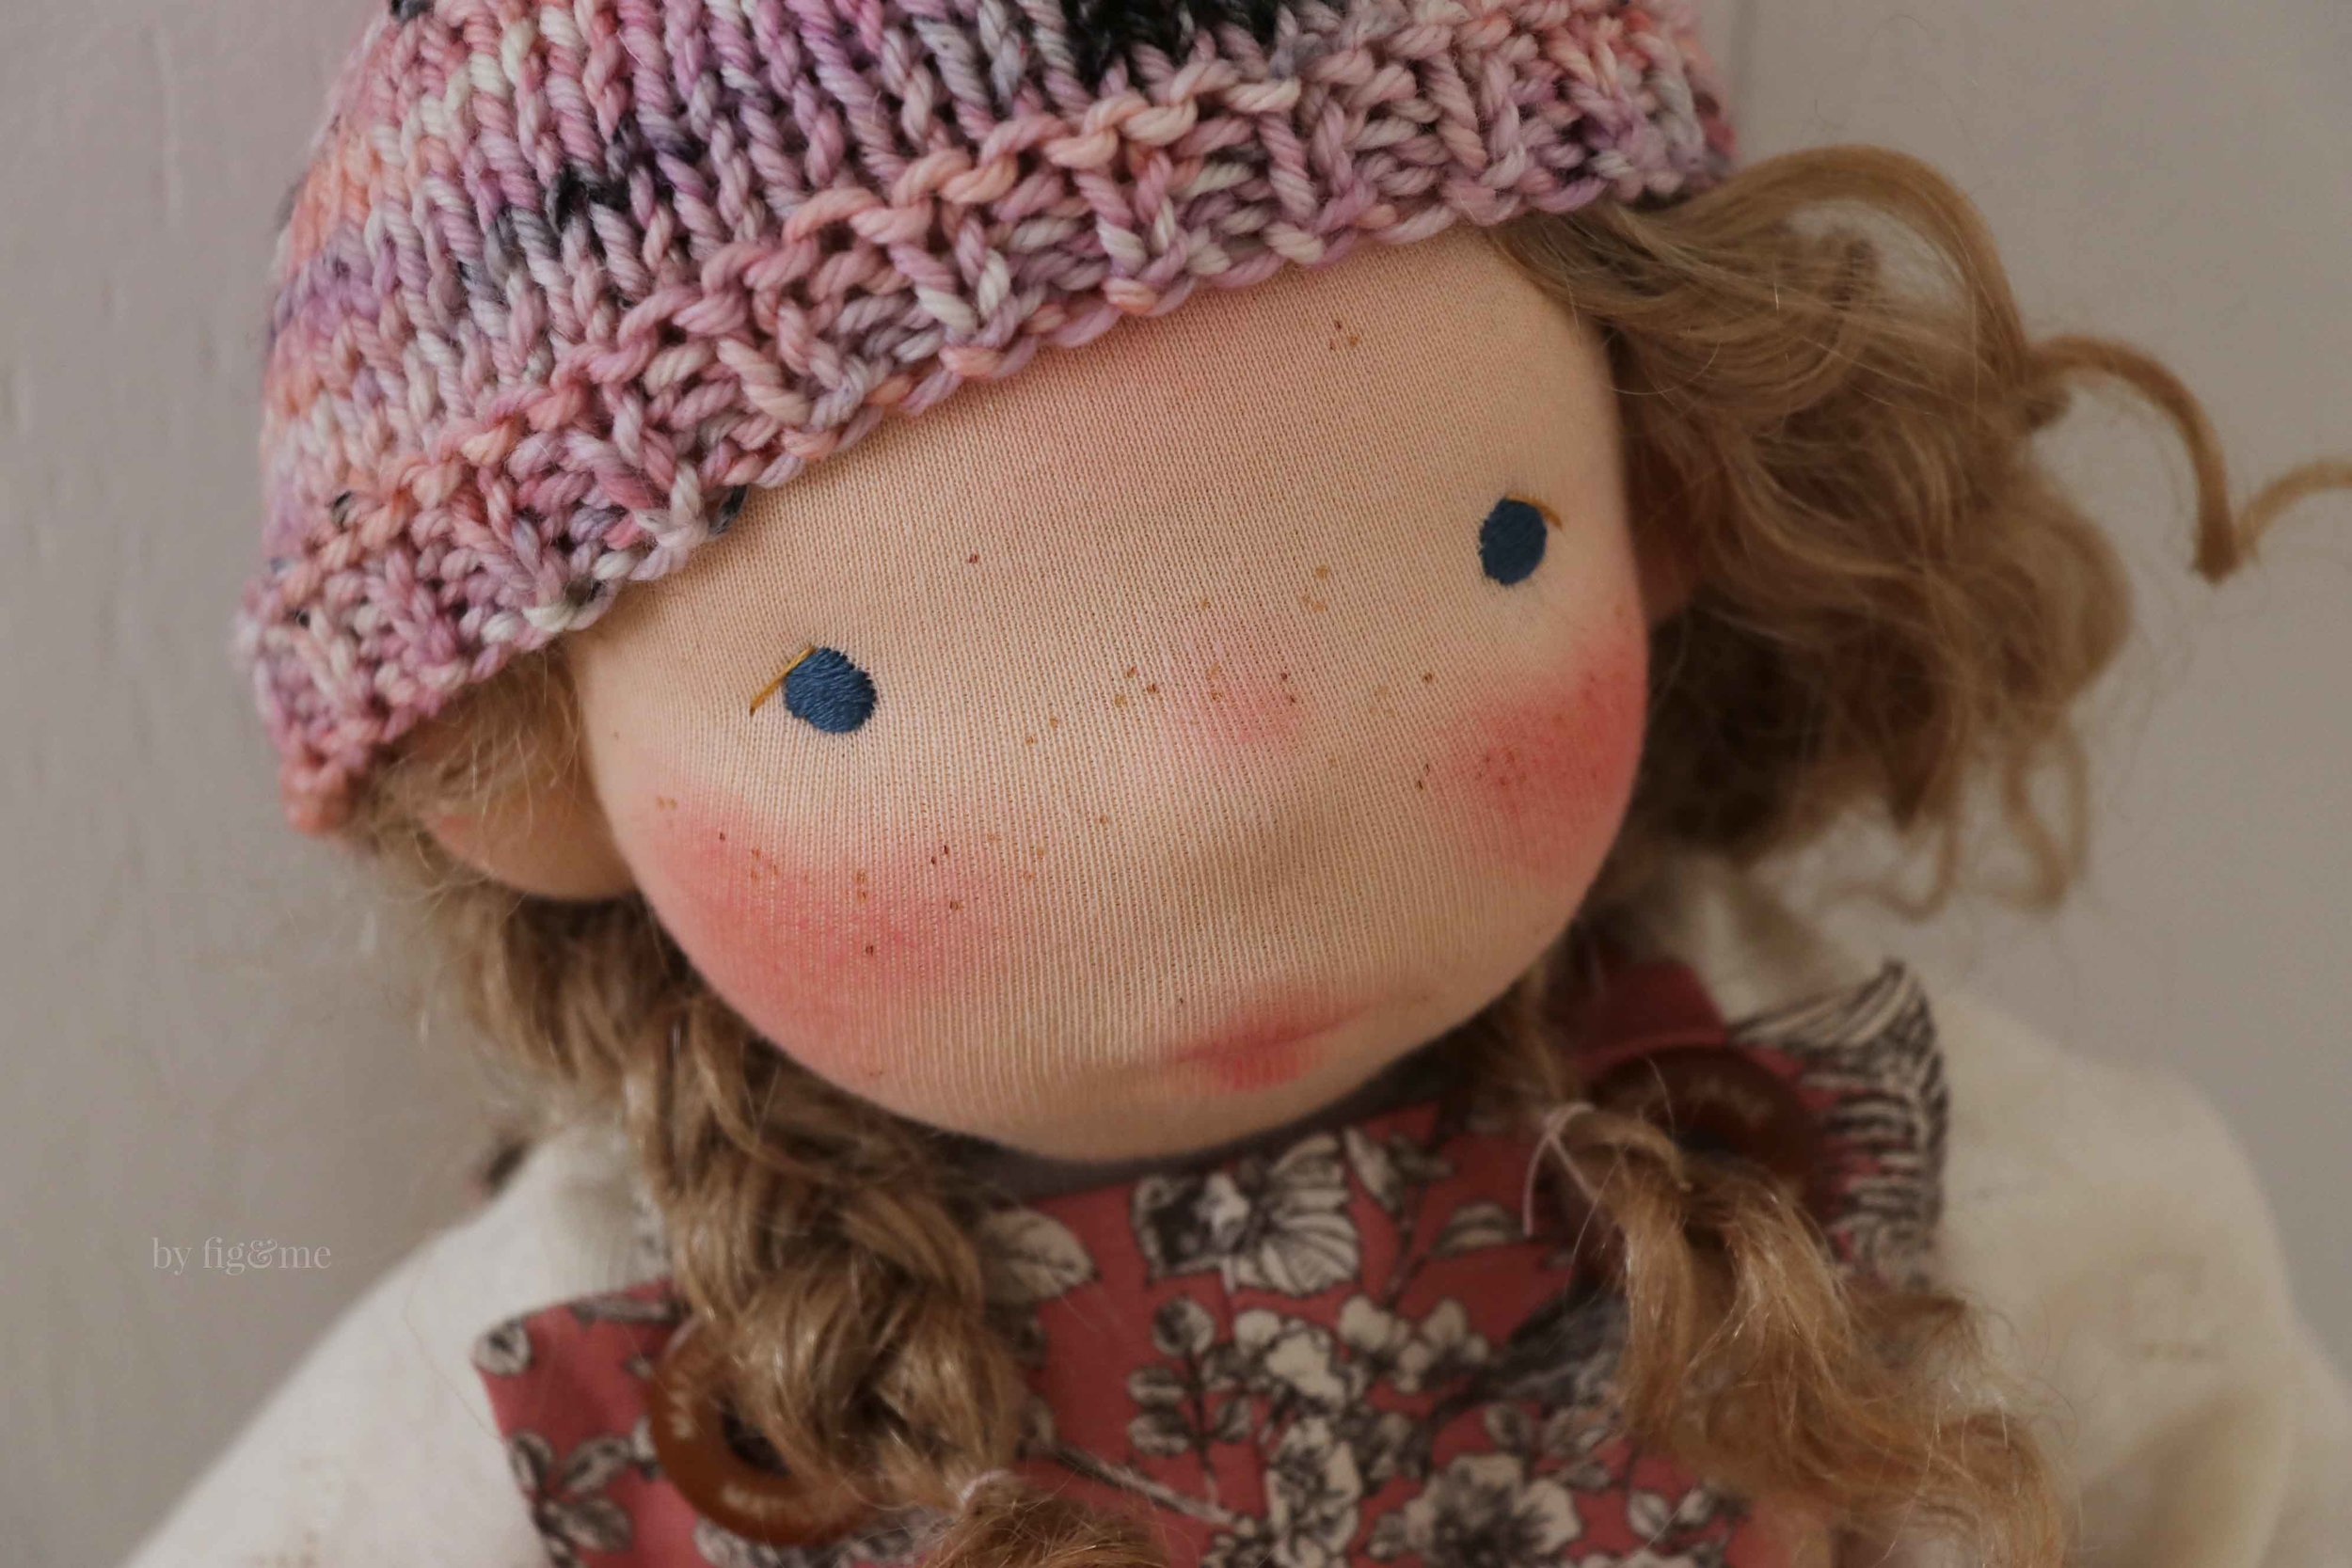 Learn to embroidery doll eyes, sculpt a doll's face in wool and add freckles for a whimsical look. Pattern via Fig and Me.